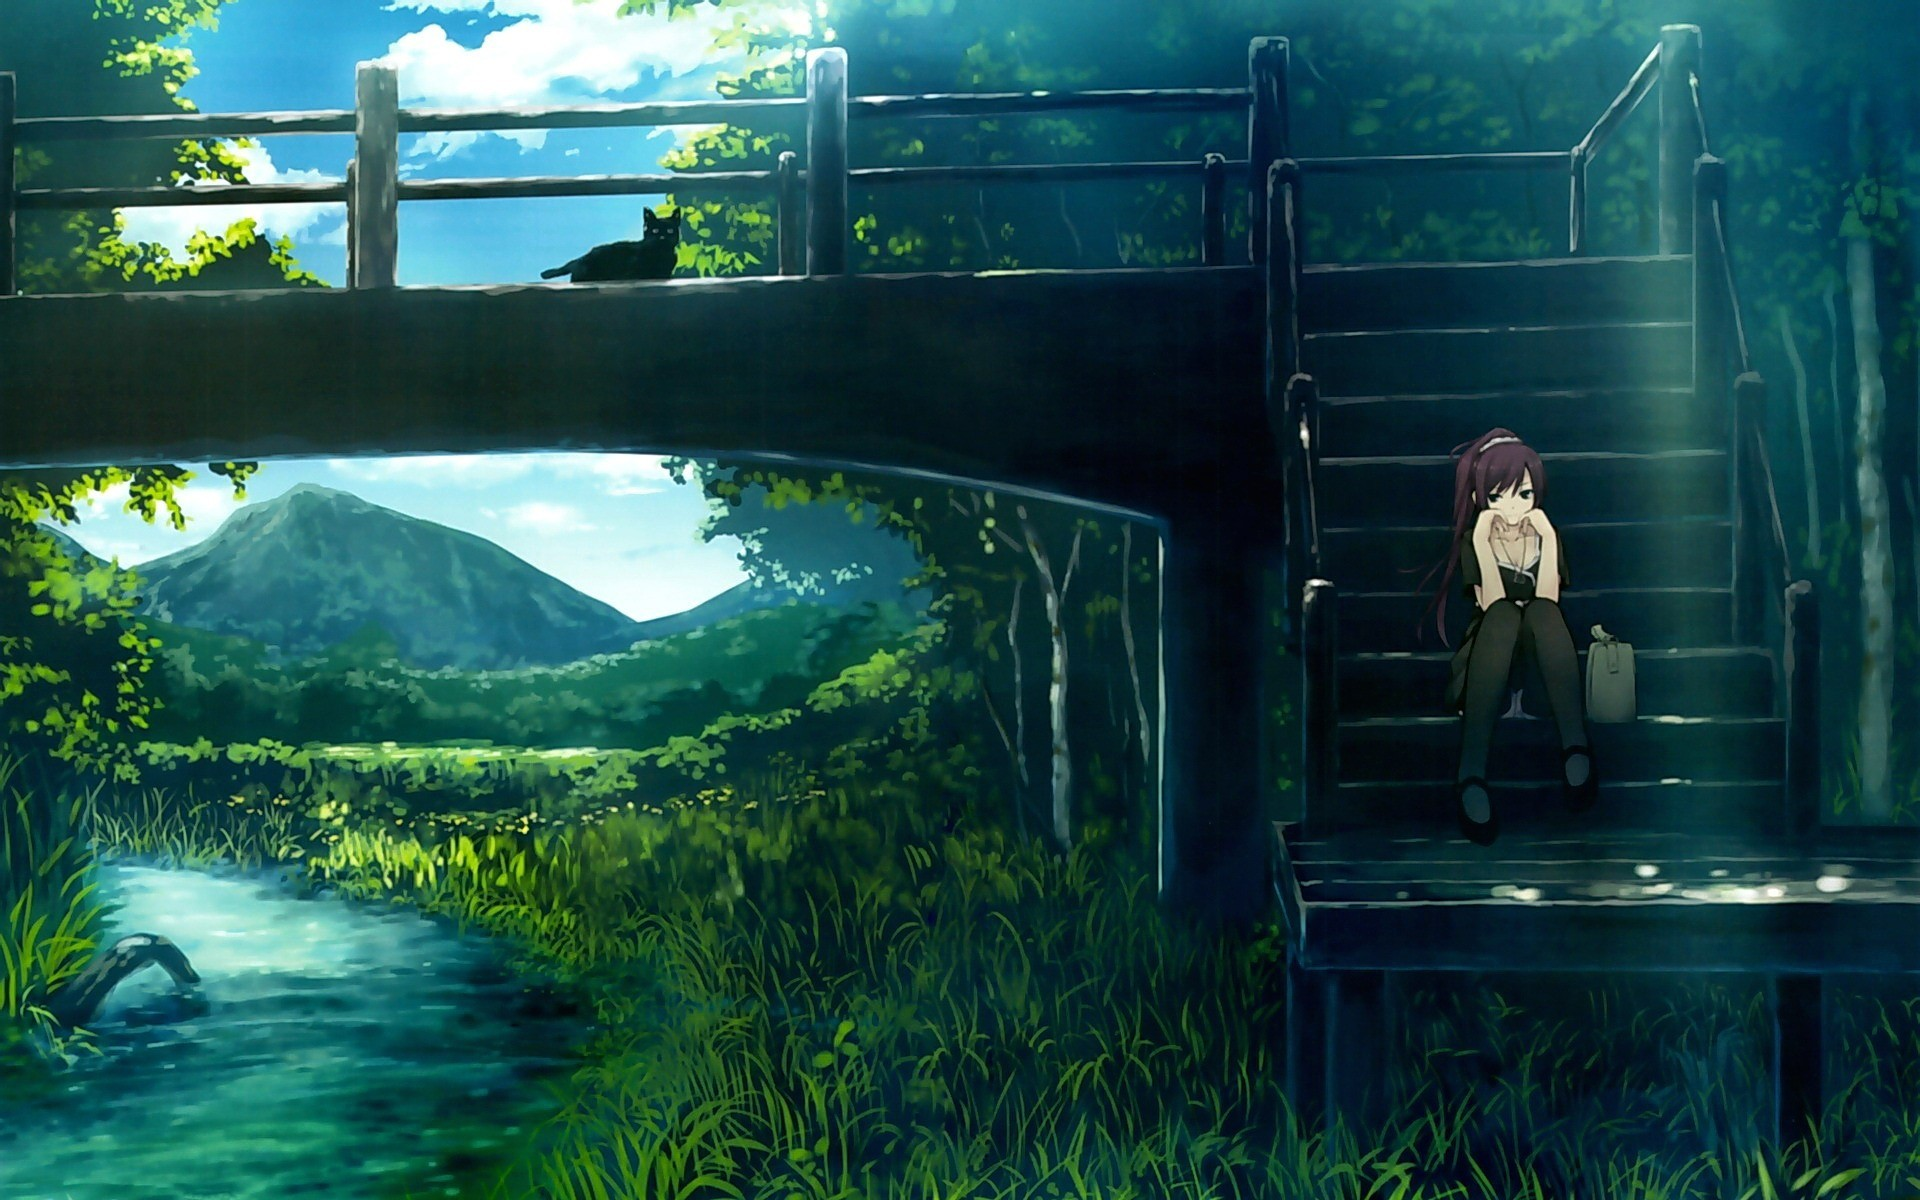 1920x1200 Anime Nature scenery Wallpaper bridge river